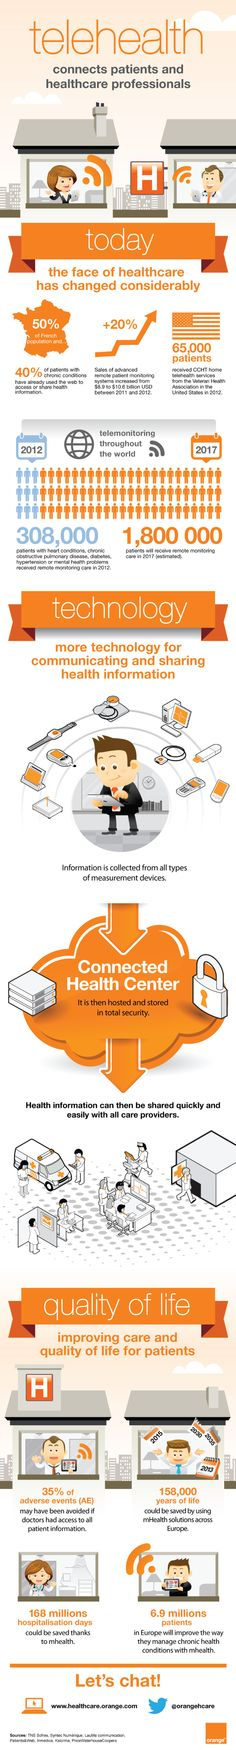 infographic---telehealth-connects-patients-and-healthcare-professionals---Orange-Healthcare